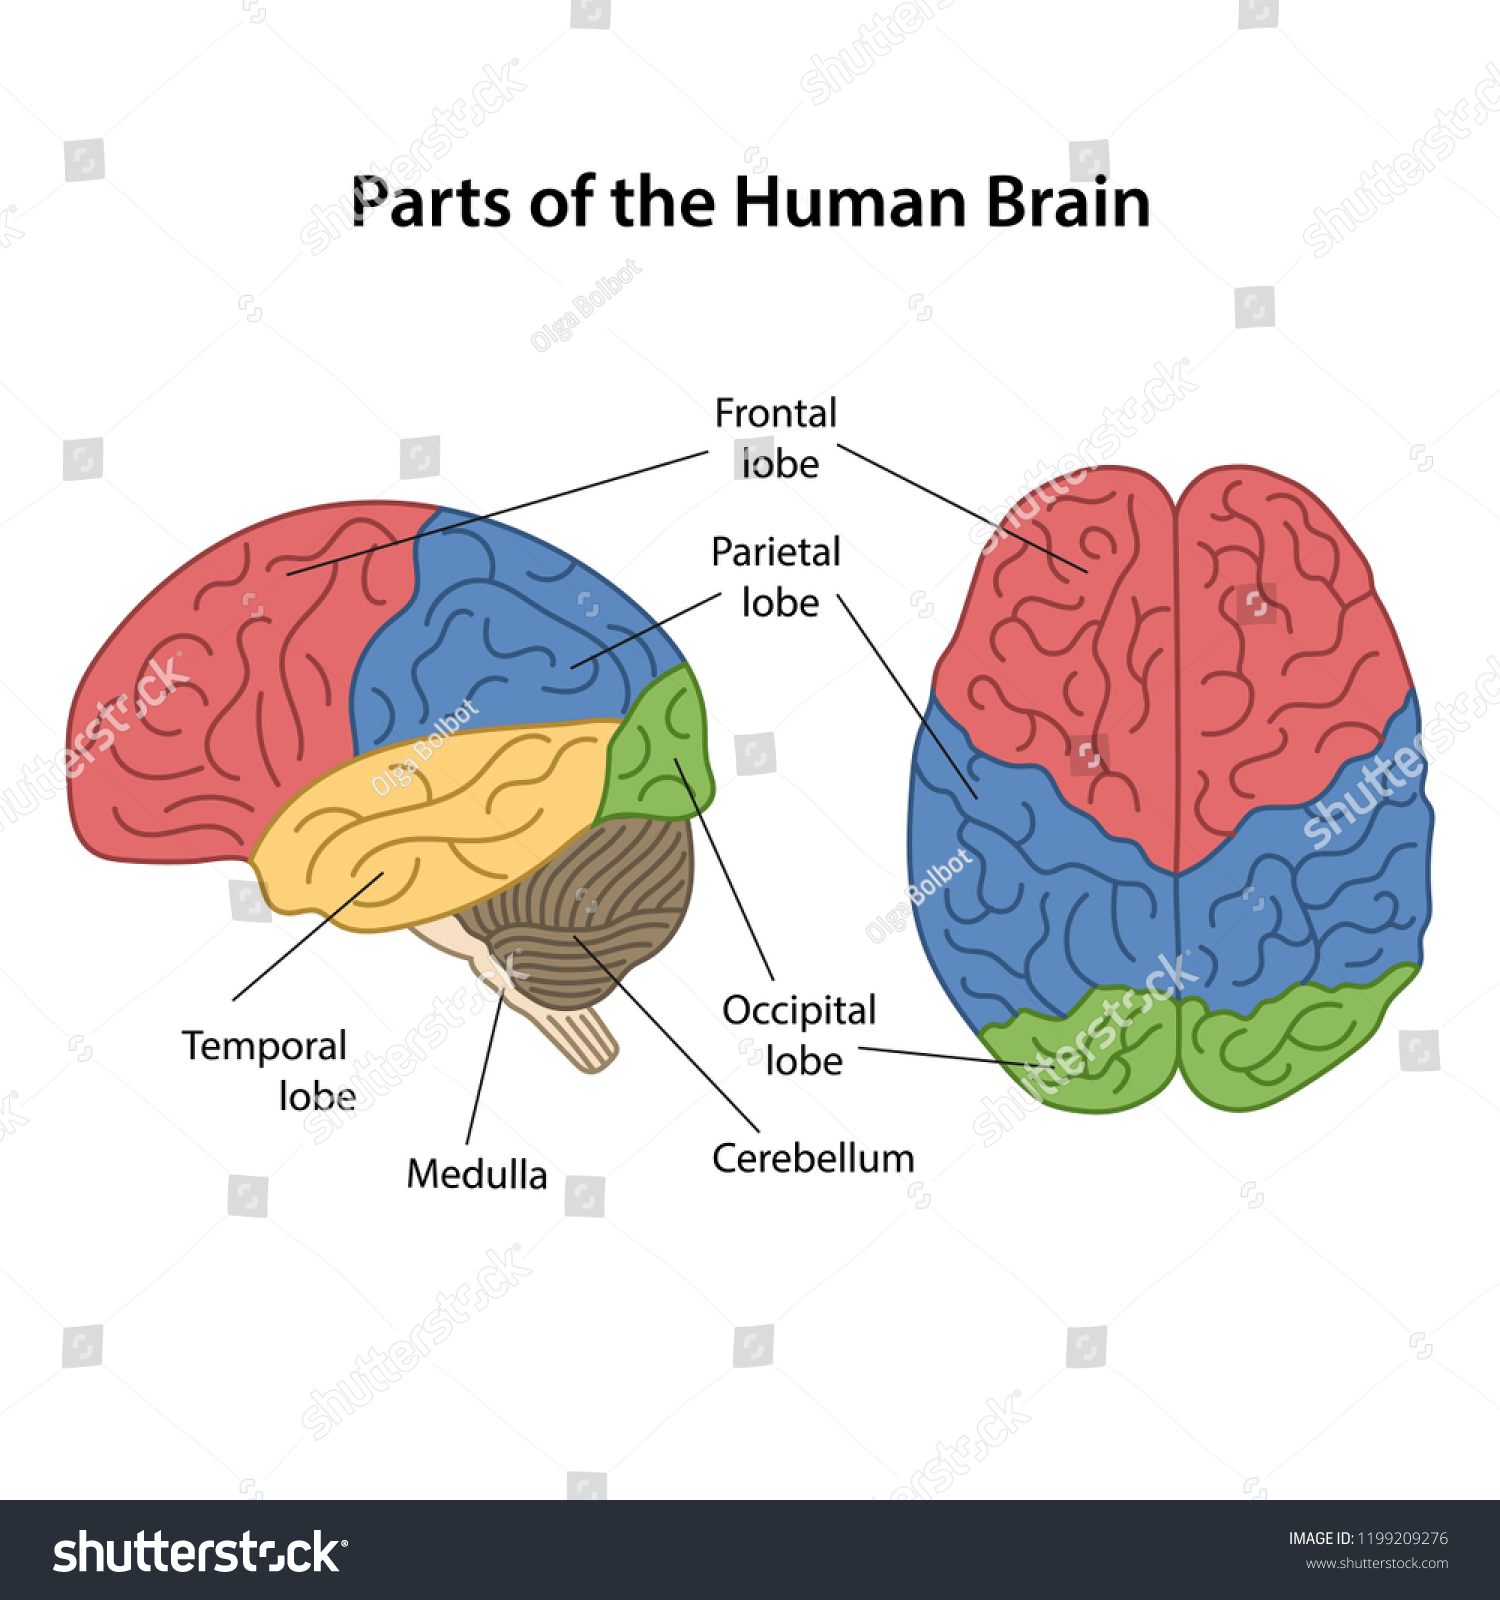 hight resolution of parts of the human brain with main parts labeled lateral view and from above view